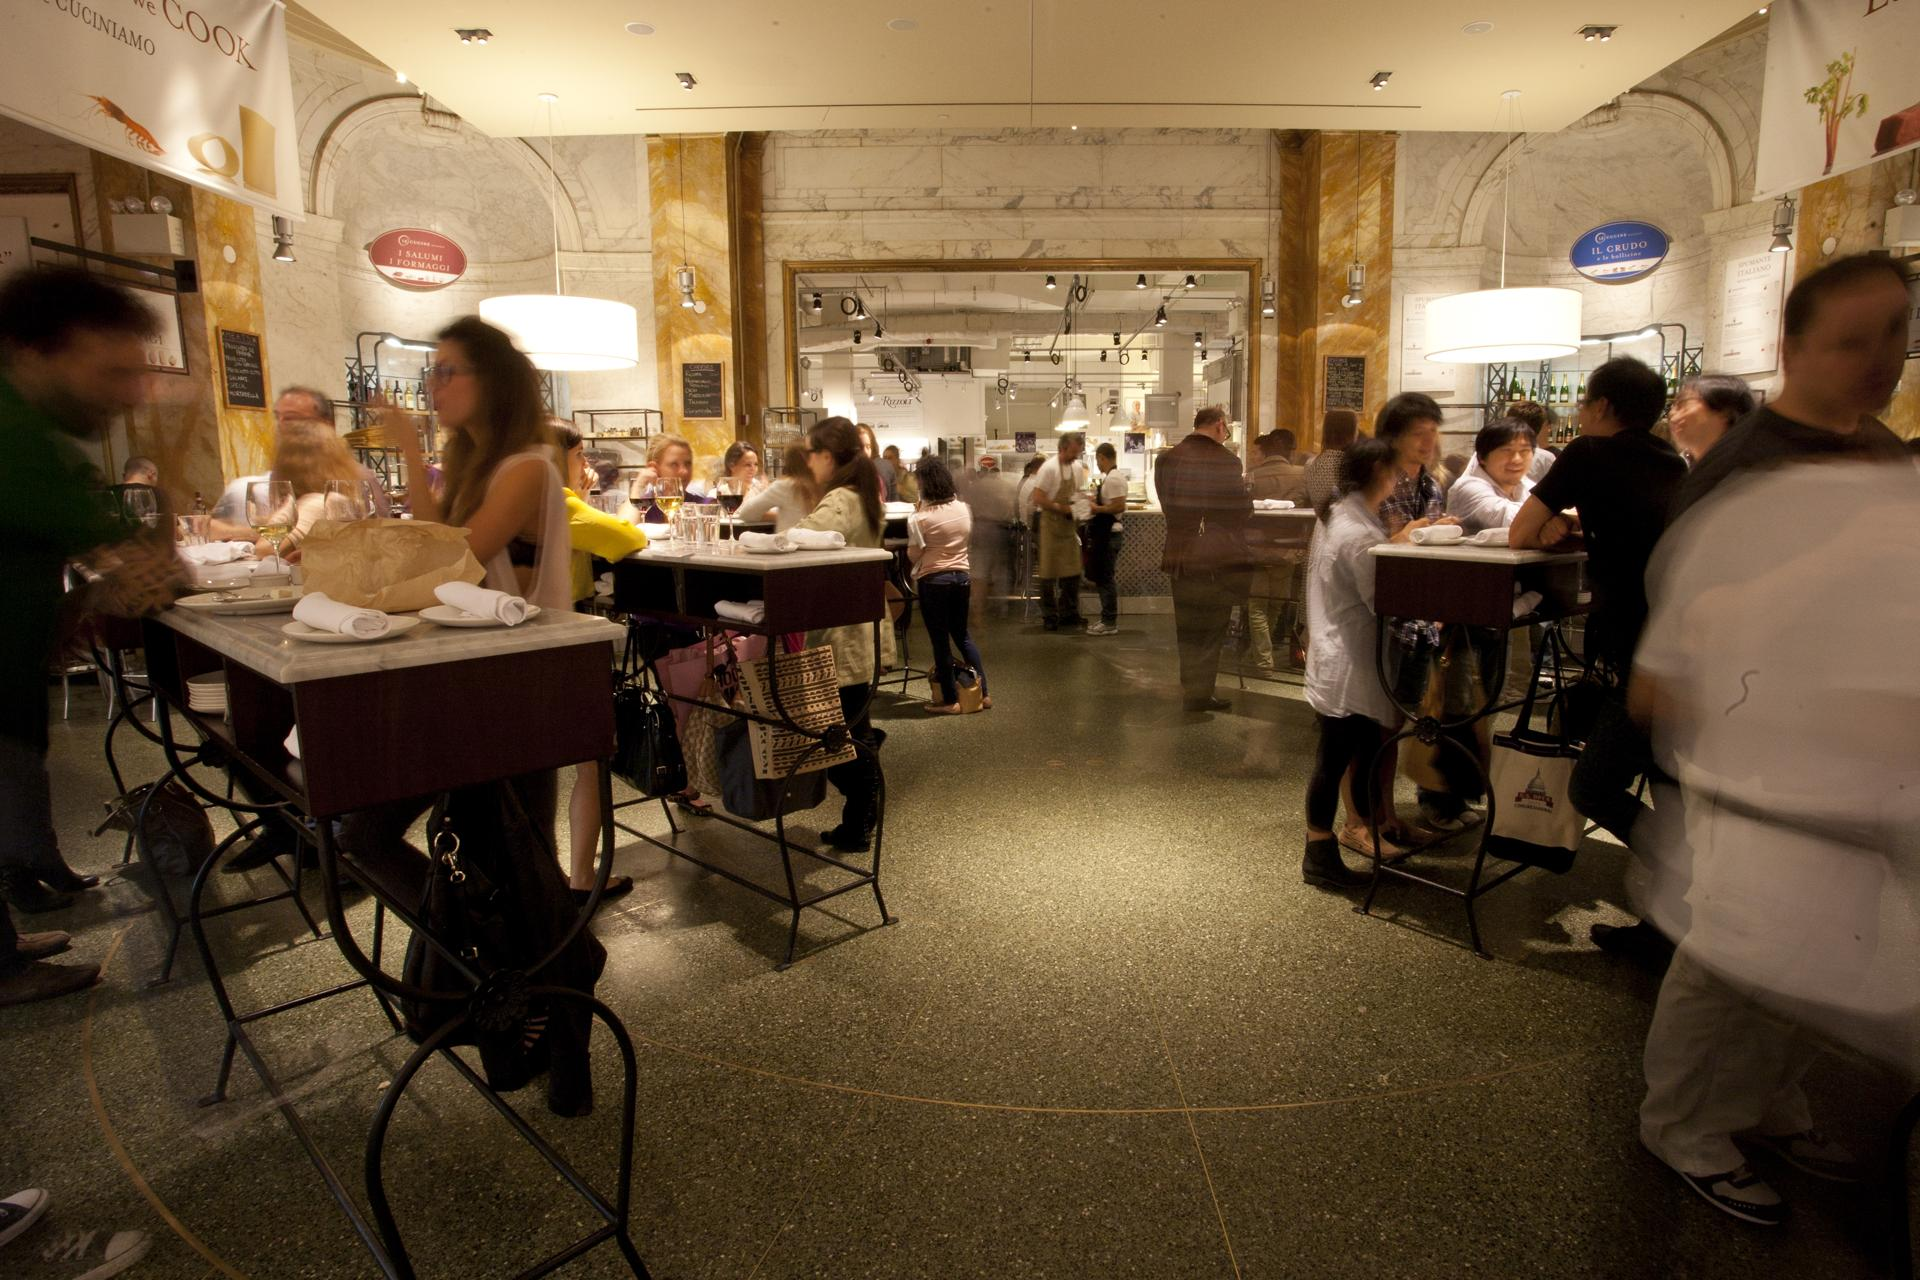 New Eataly food emporium nears deal to open in Prudential Center